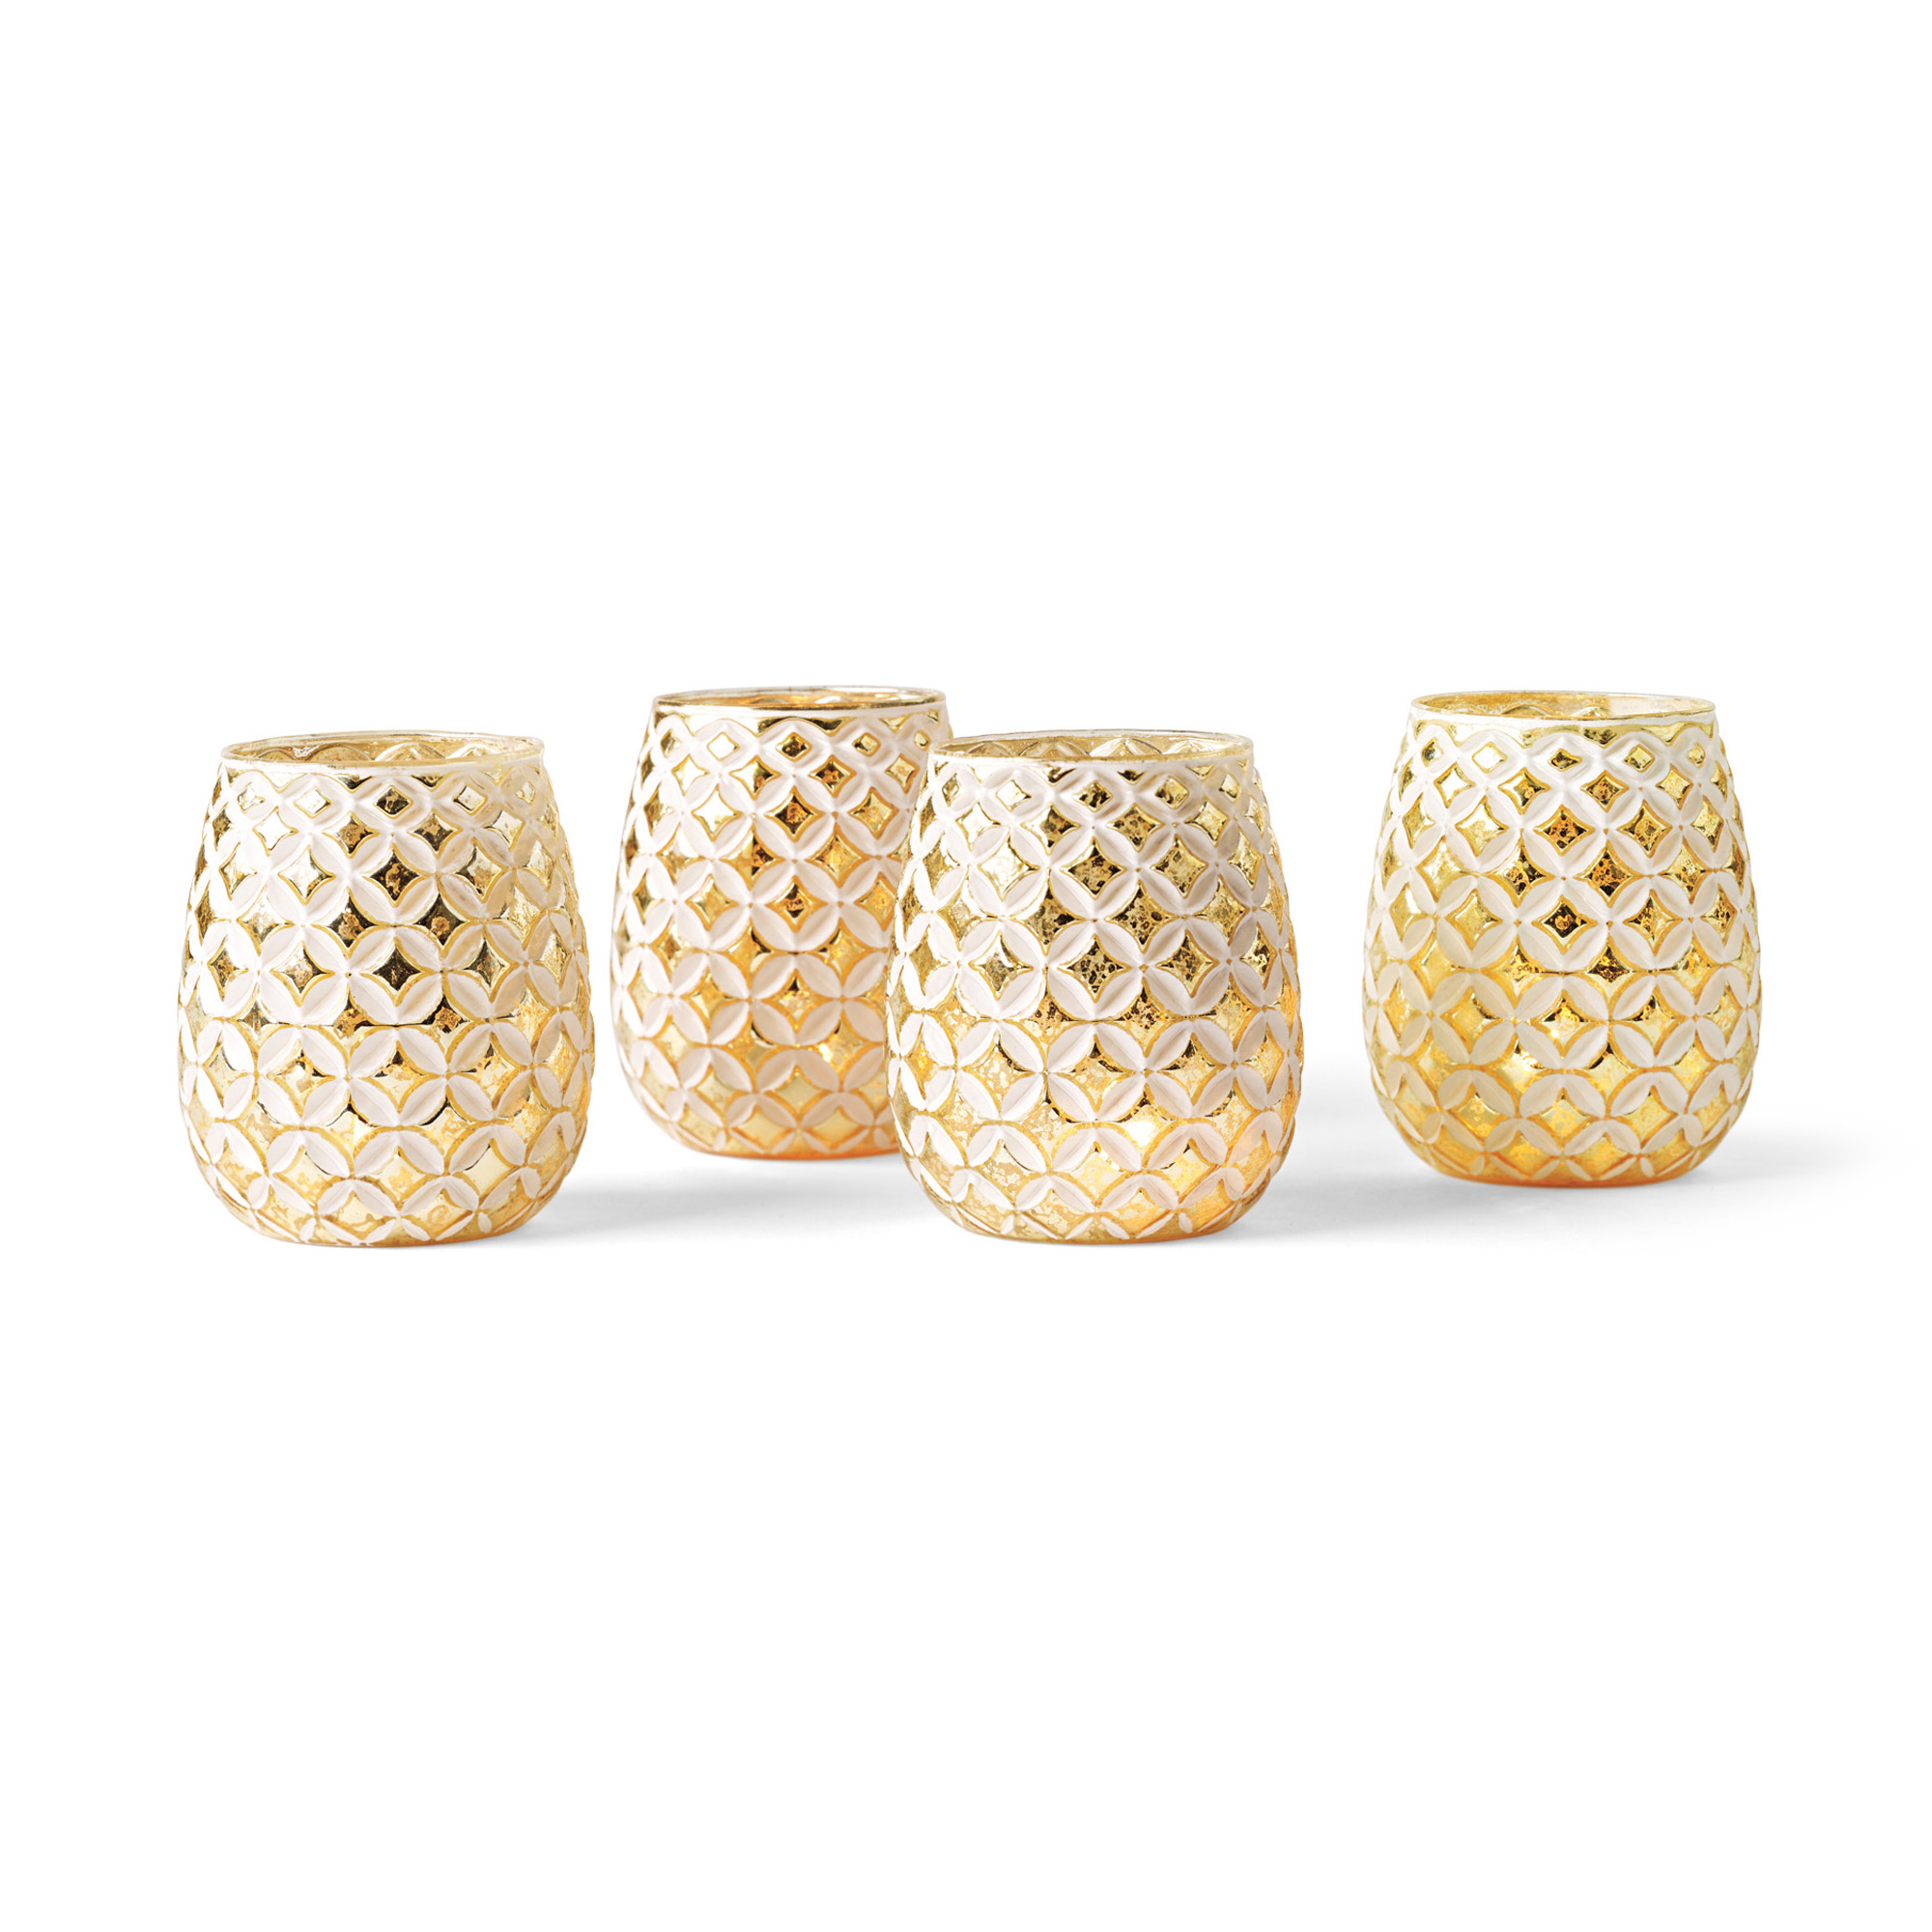 White & Gold Votive Holders